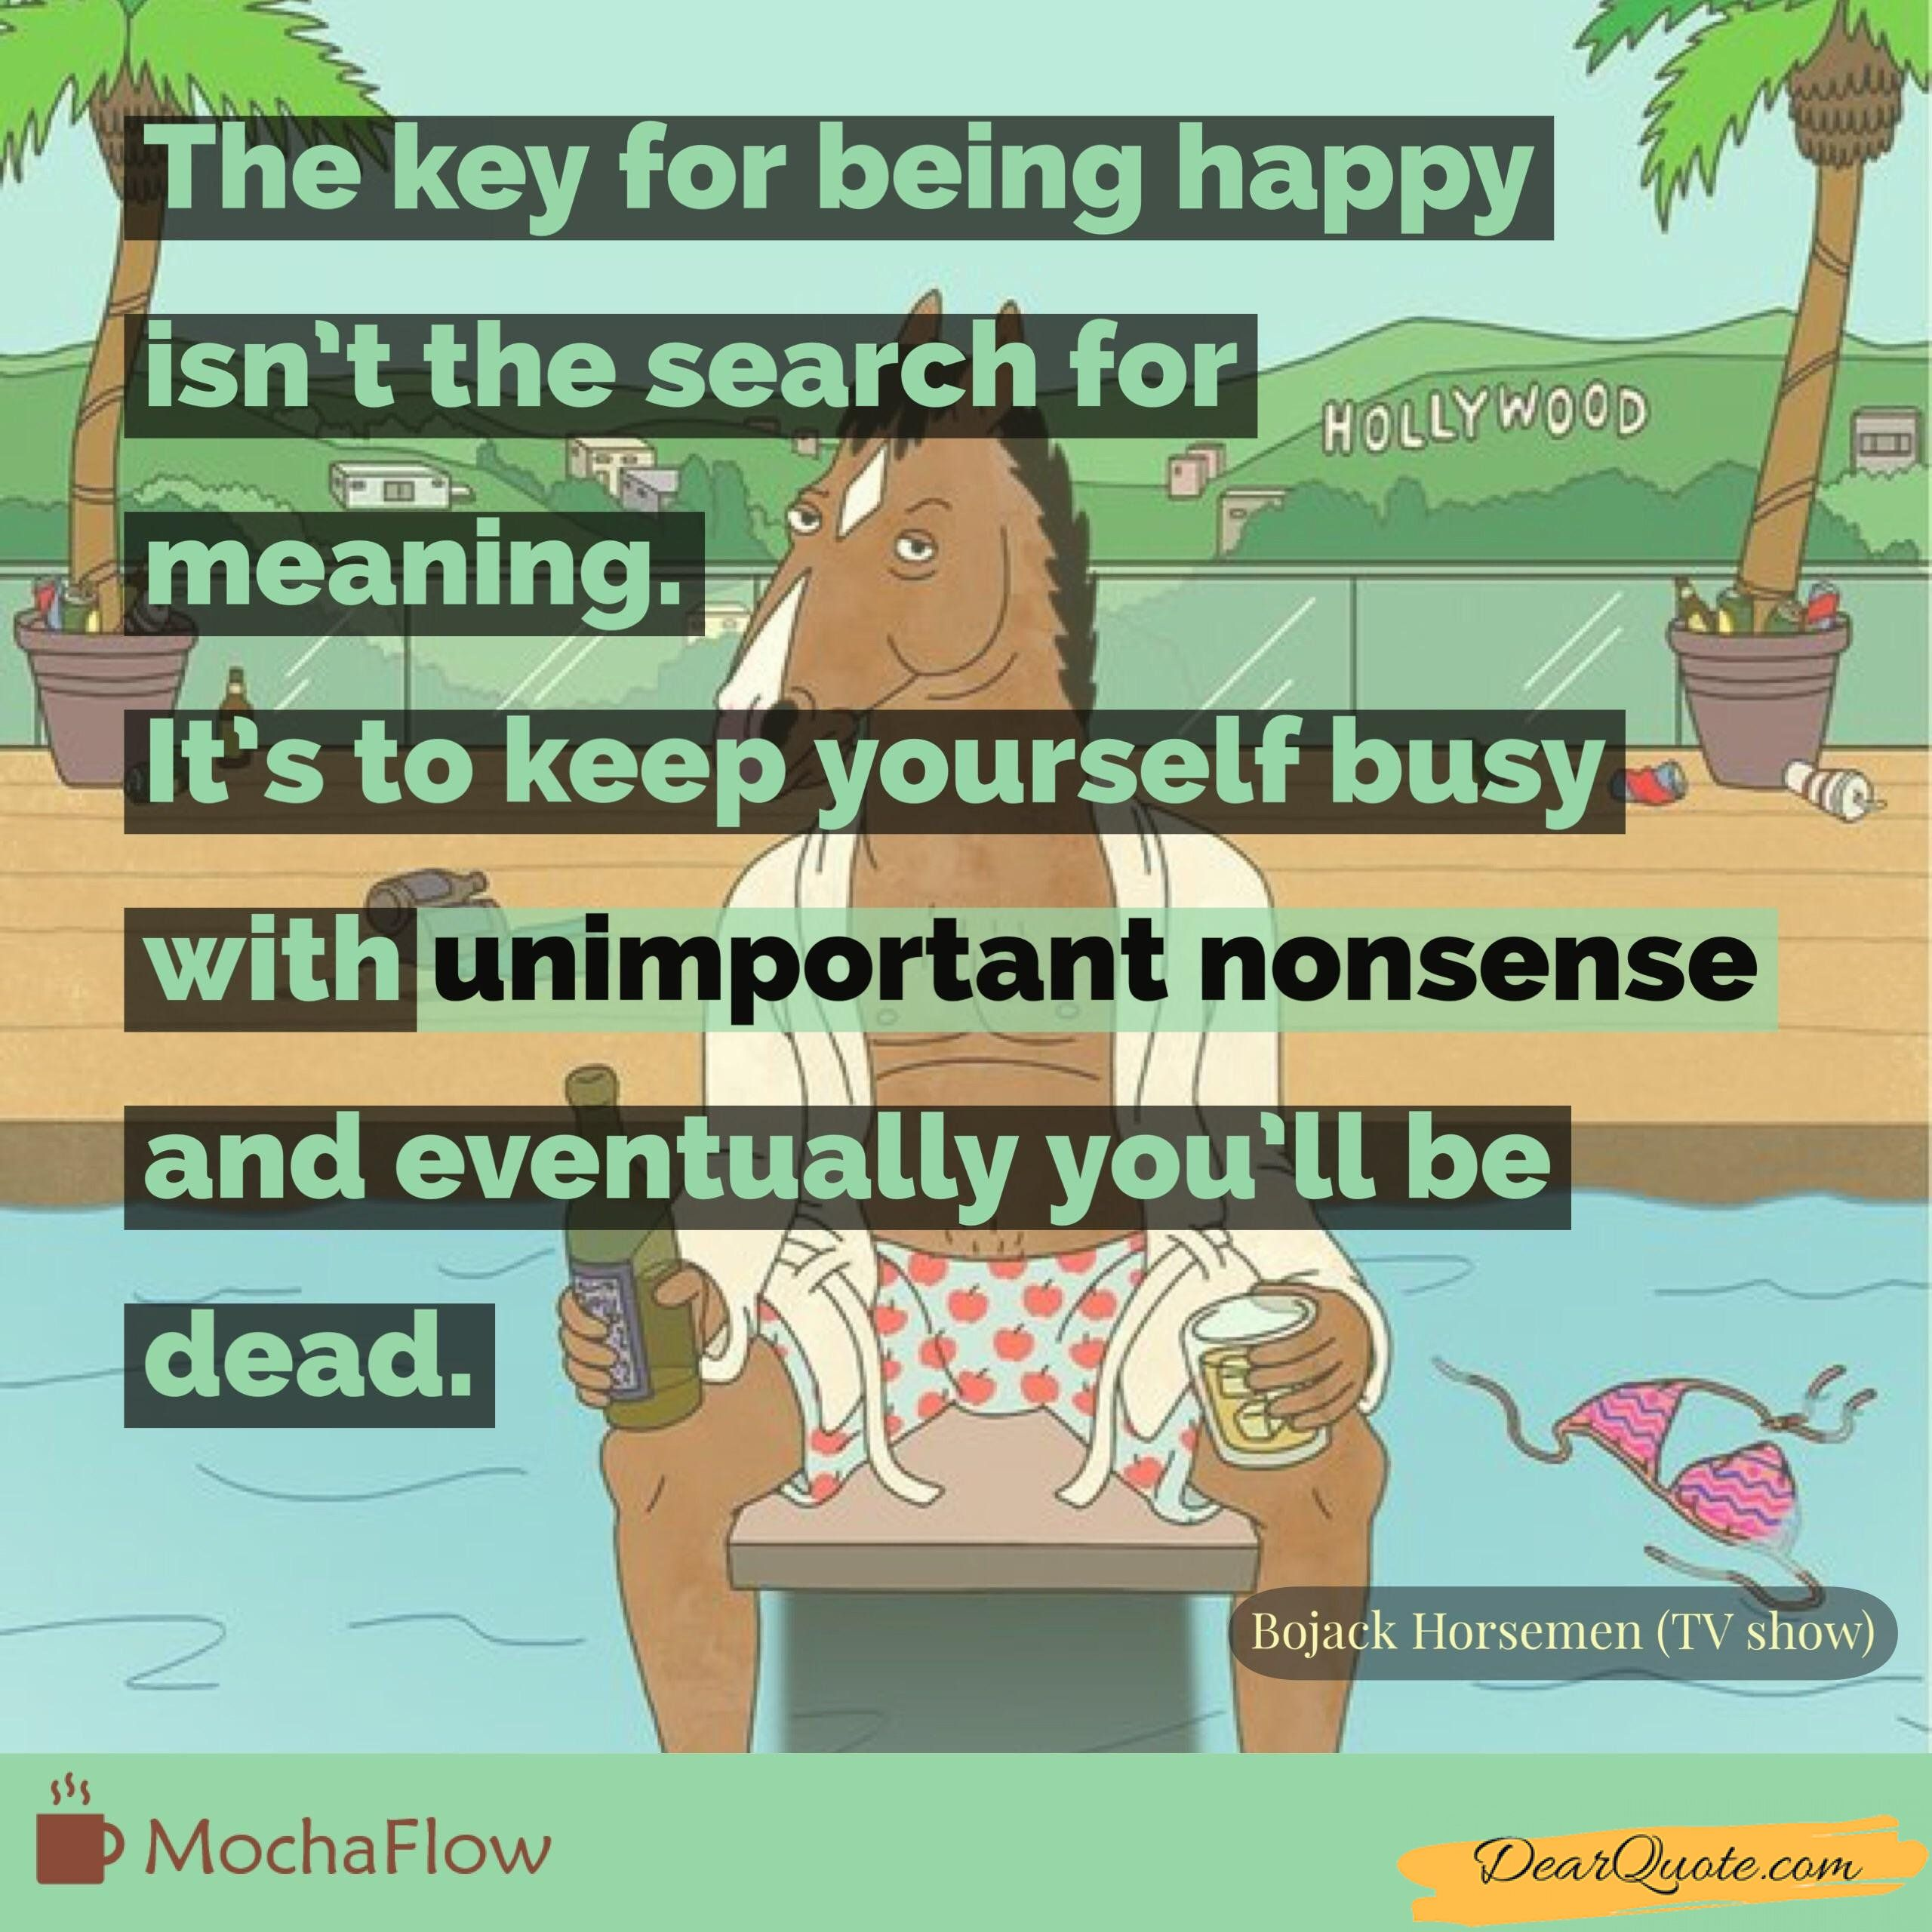 Keep Yourself Busy To Stay Happy Quotes: The Key For Being Happy Isn't The Search For Meaning. It's